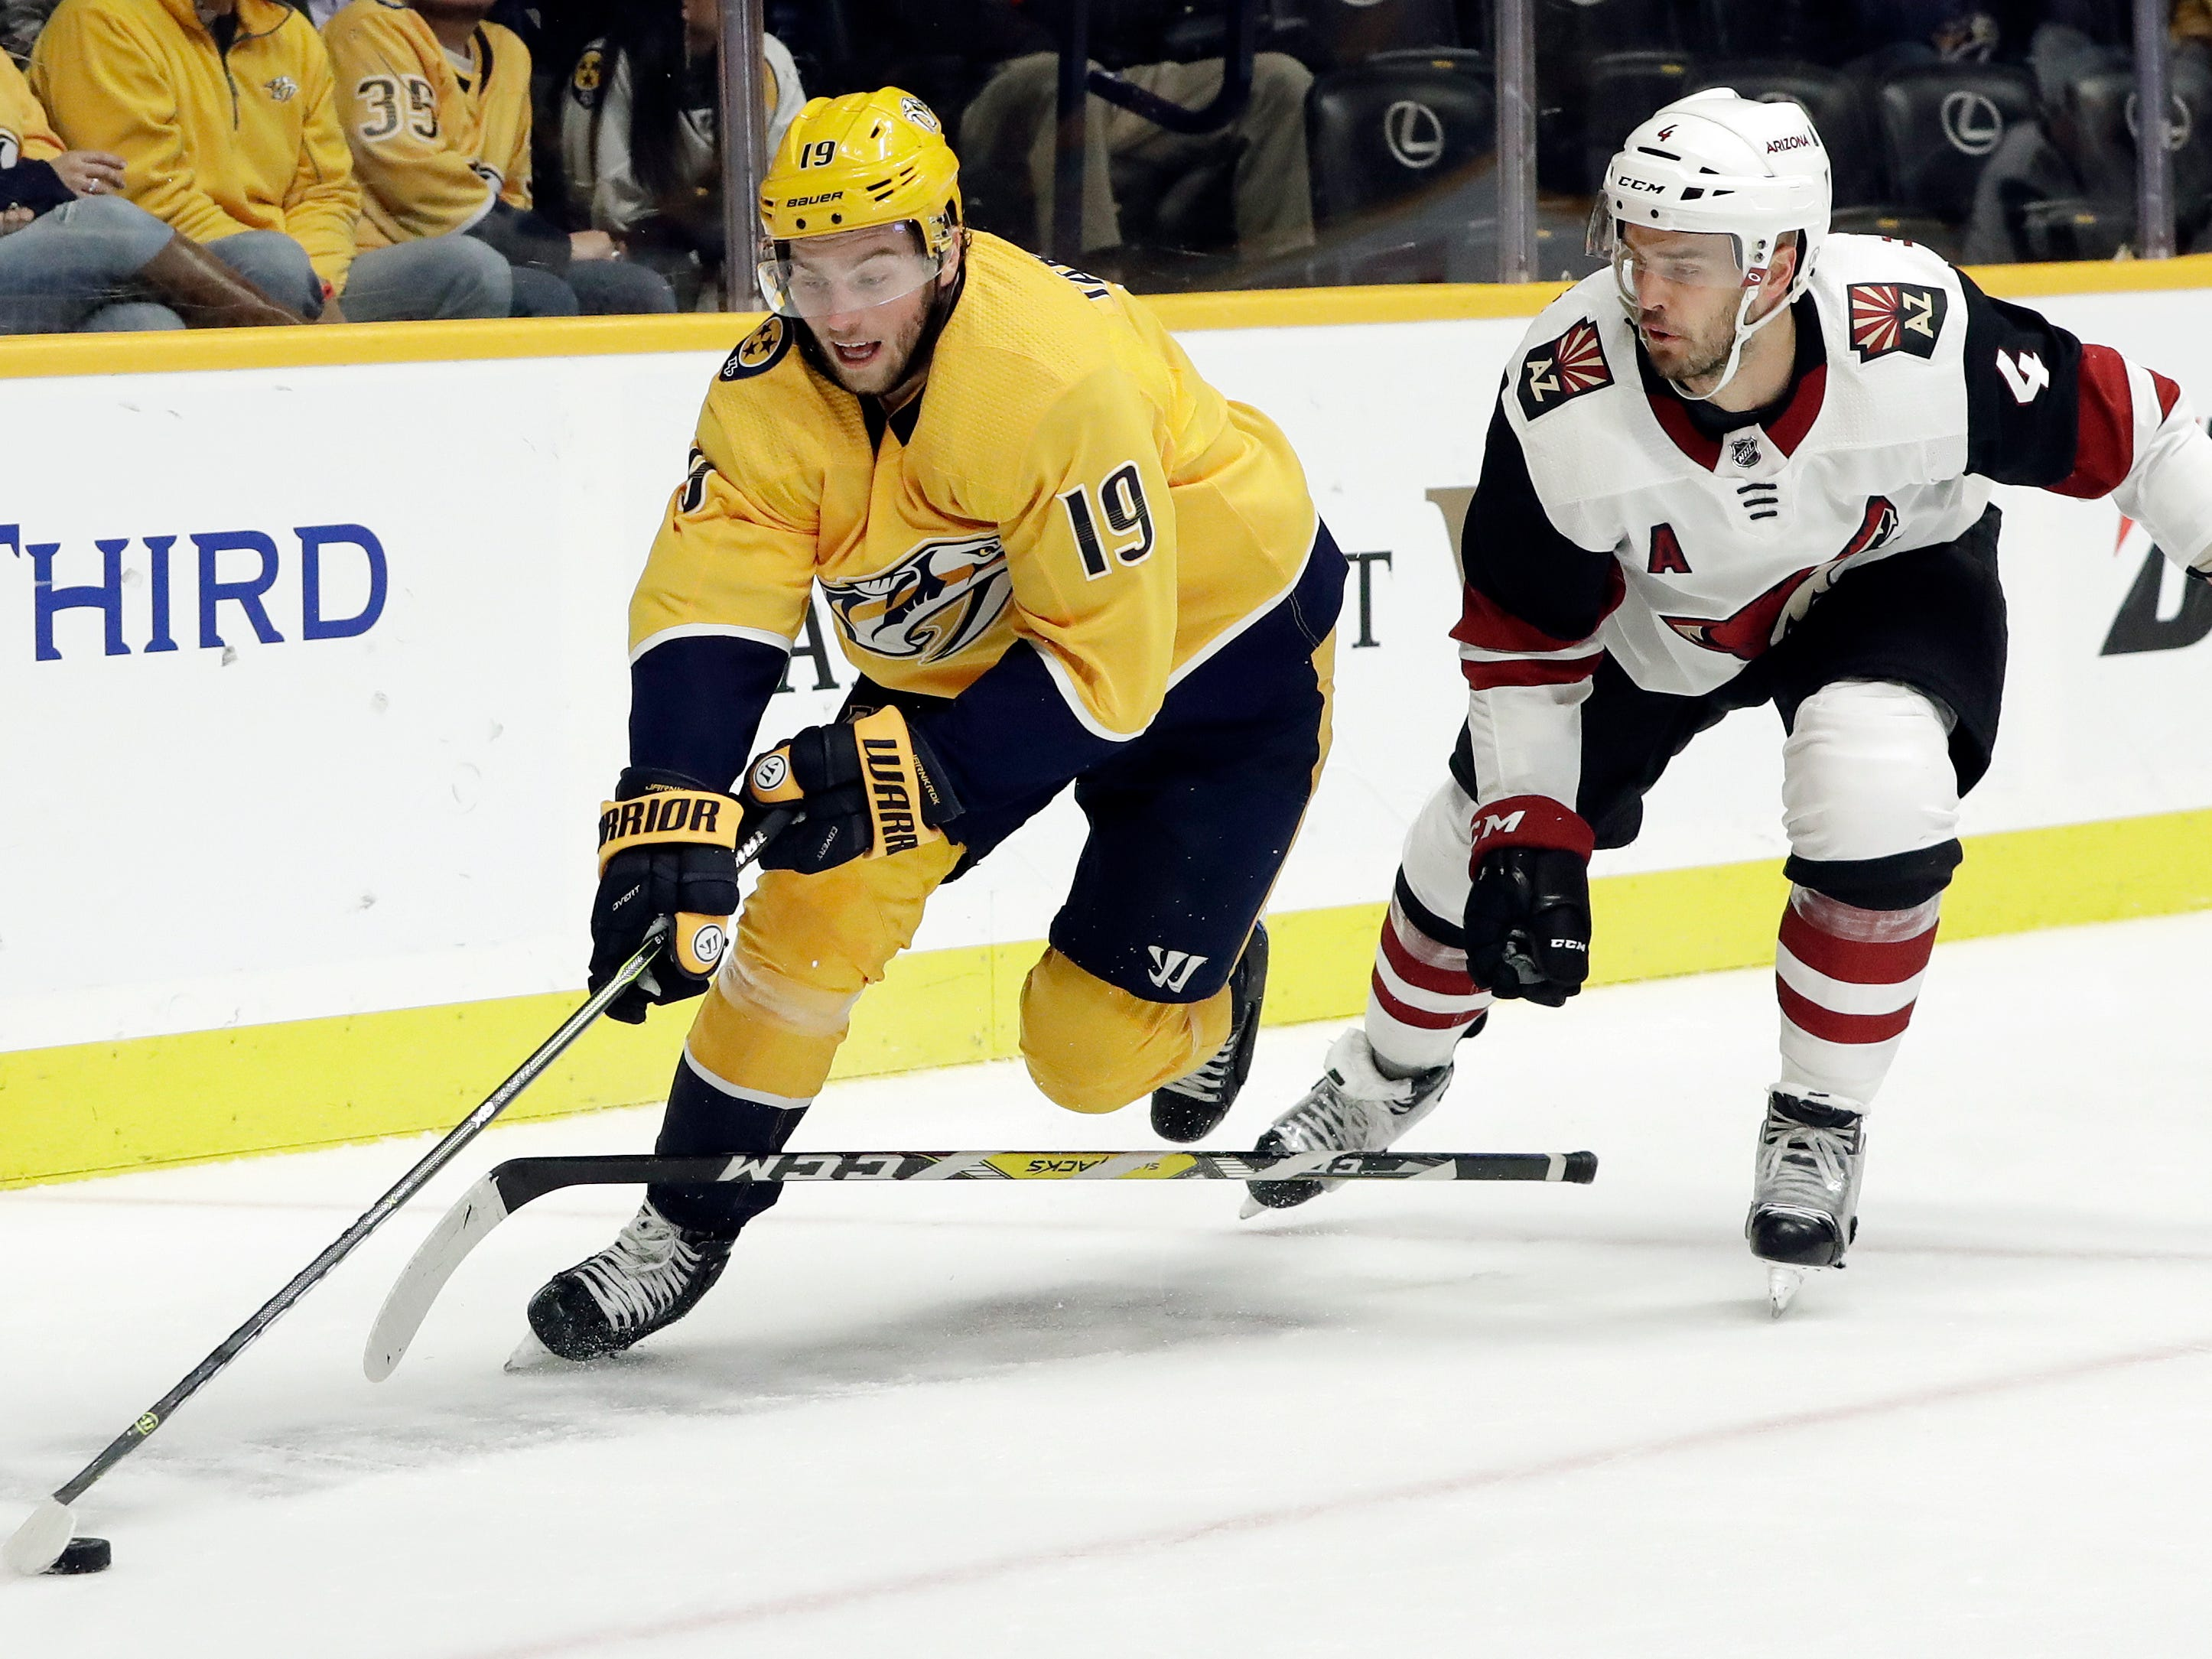 Arizona Coyotes defenseman Niklas Hjalmarsson (4), of Sweden, loses his stick as Nashville Predators center Calle Jarnkrok (19), also of Sweden, takes the puck away in the second period of an NHL hockey game Thursday, Nov. 29, 2018, in Nashville, Tenn. (AP Photo/Mark Humphrey)